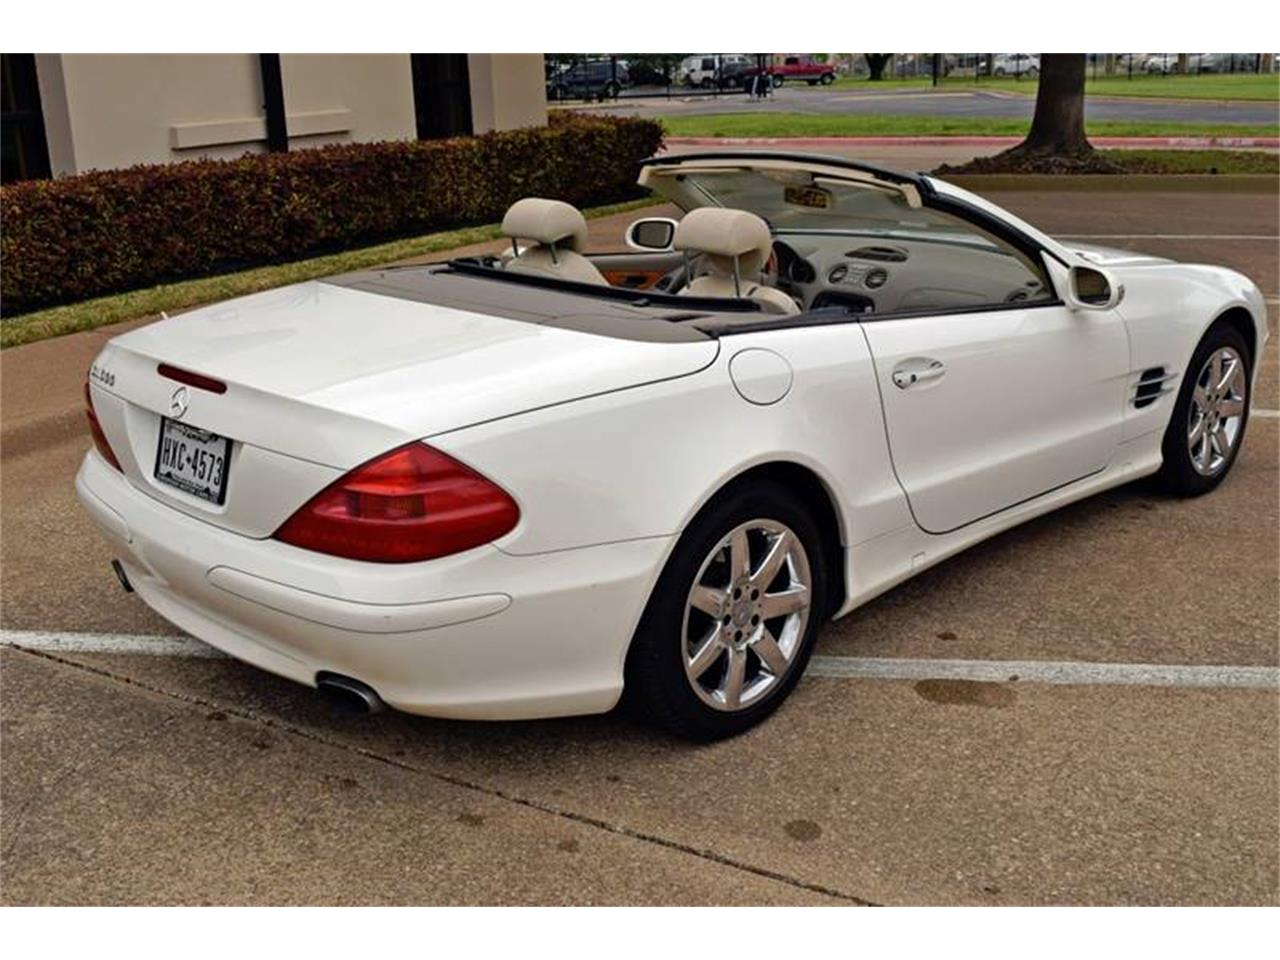 Large Picture of '03 Mercedes-Benz SL-Class located in Texas - $13,900.00 Offered by European Motor Cars LTD - PSCW